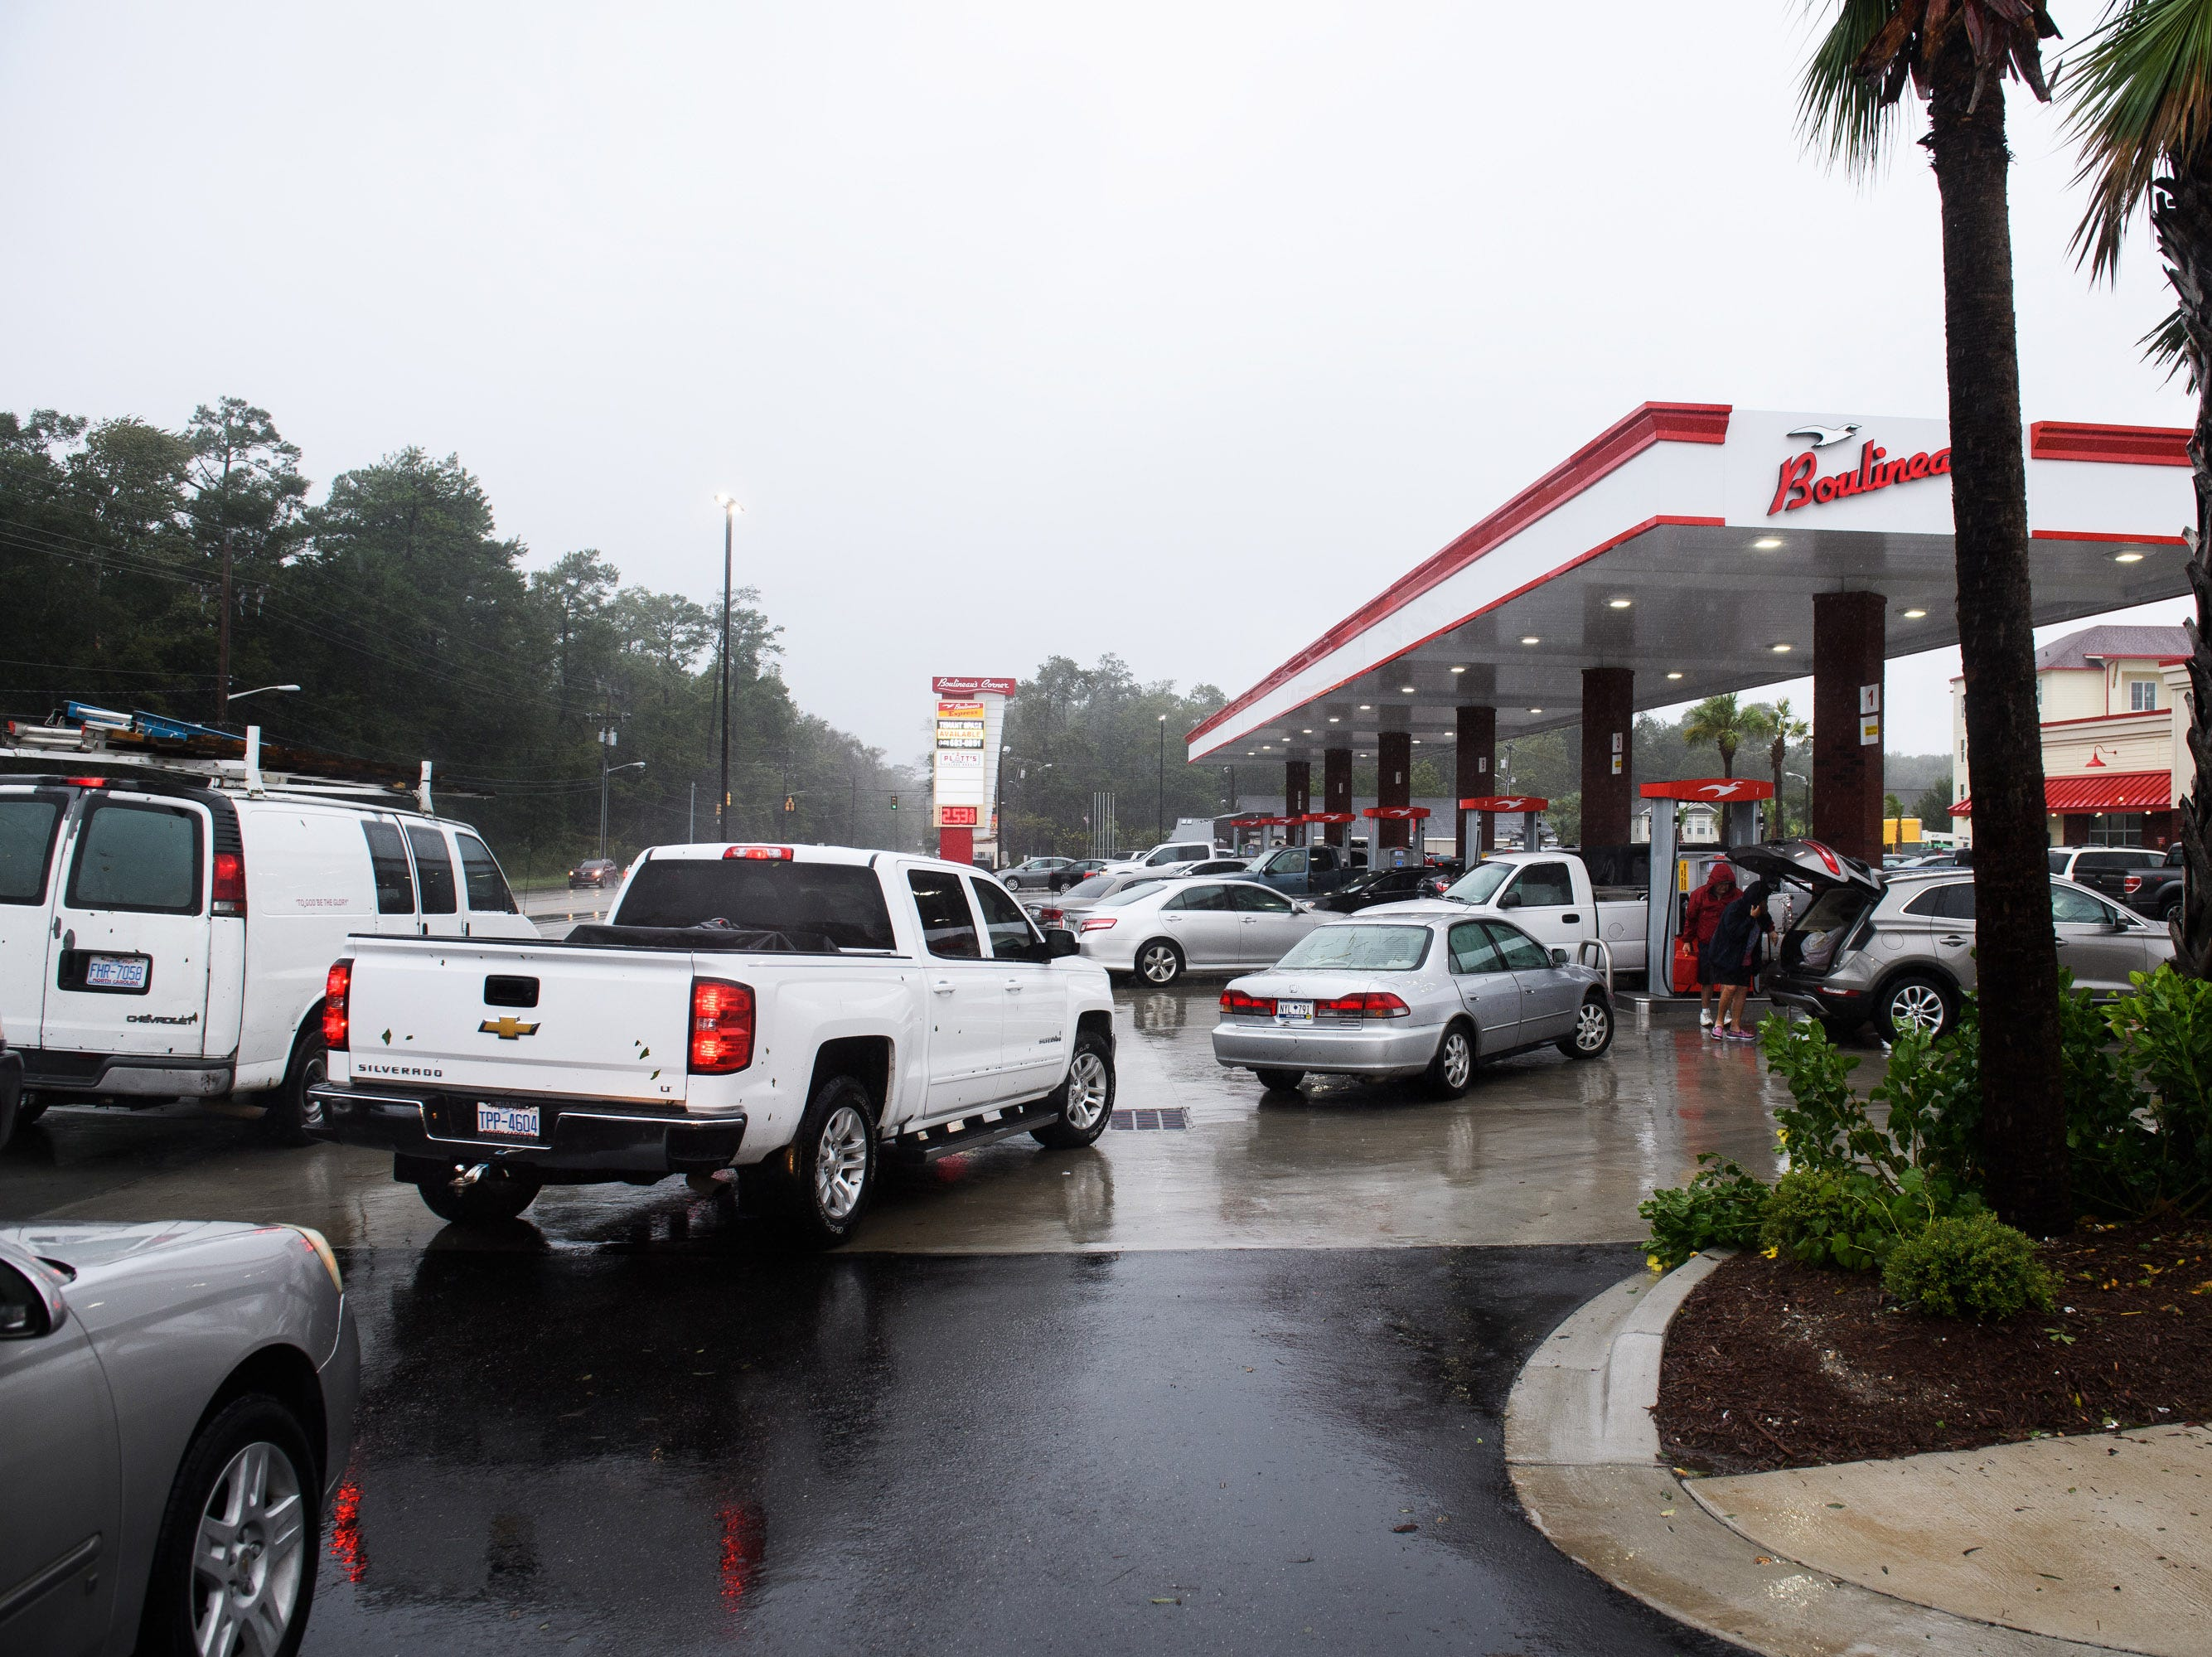 North Myrtle Beach, S.C. residents swarm Boulineau's Corner, one of the first gas stations to open since Hurricane Florence swept through the area, on Saturday, Sept. 15, 2018.